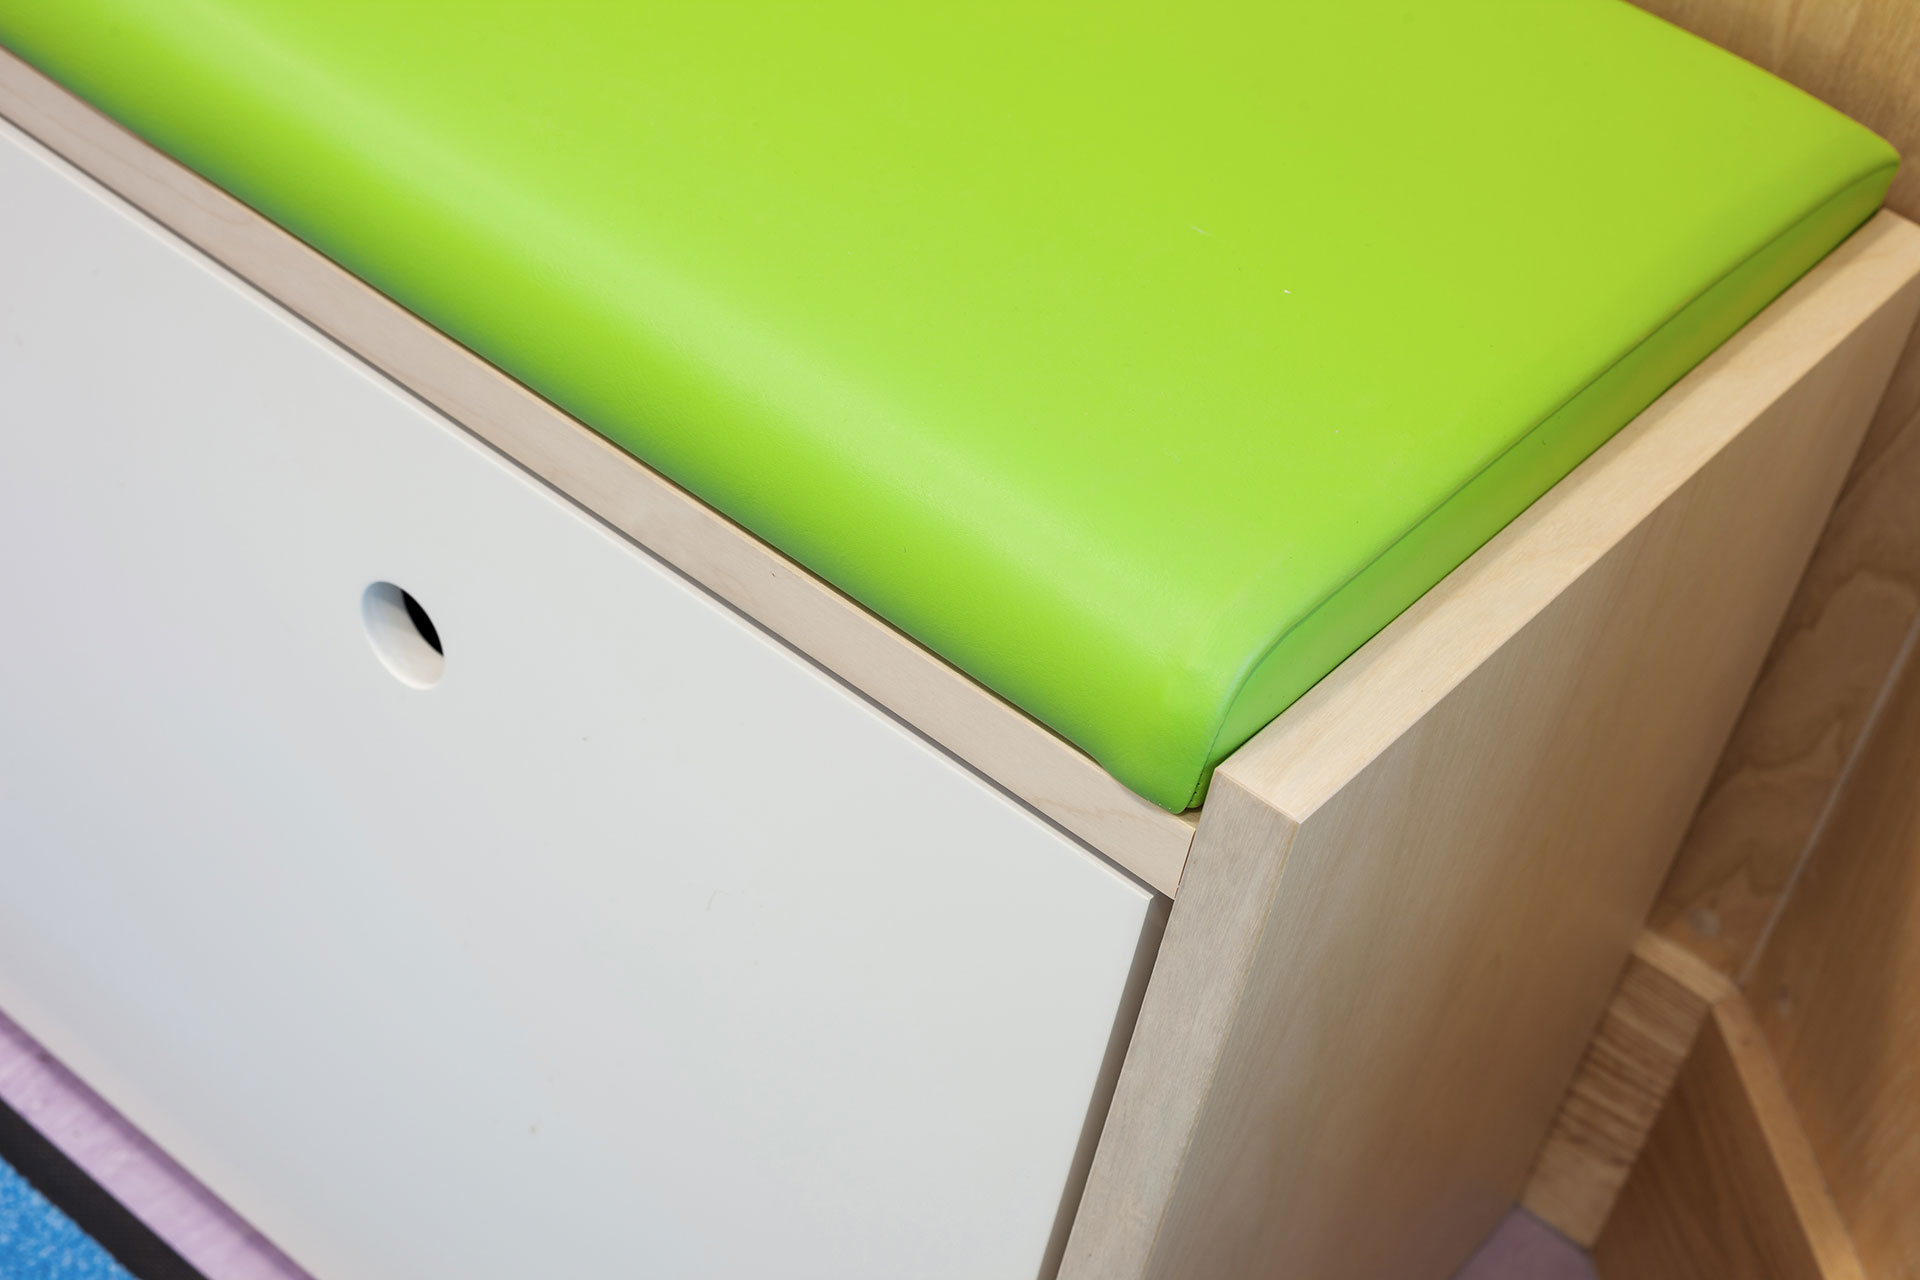 Infection control upholstery used for seating pad in teenagers day room